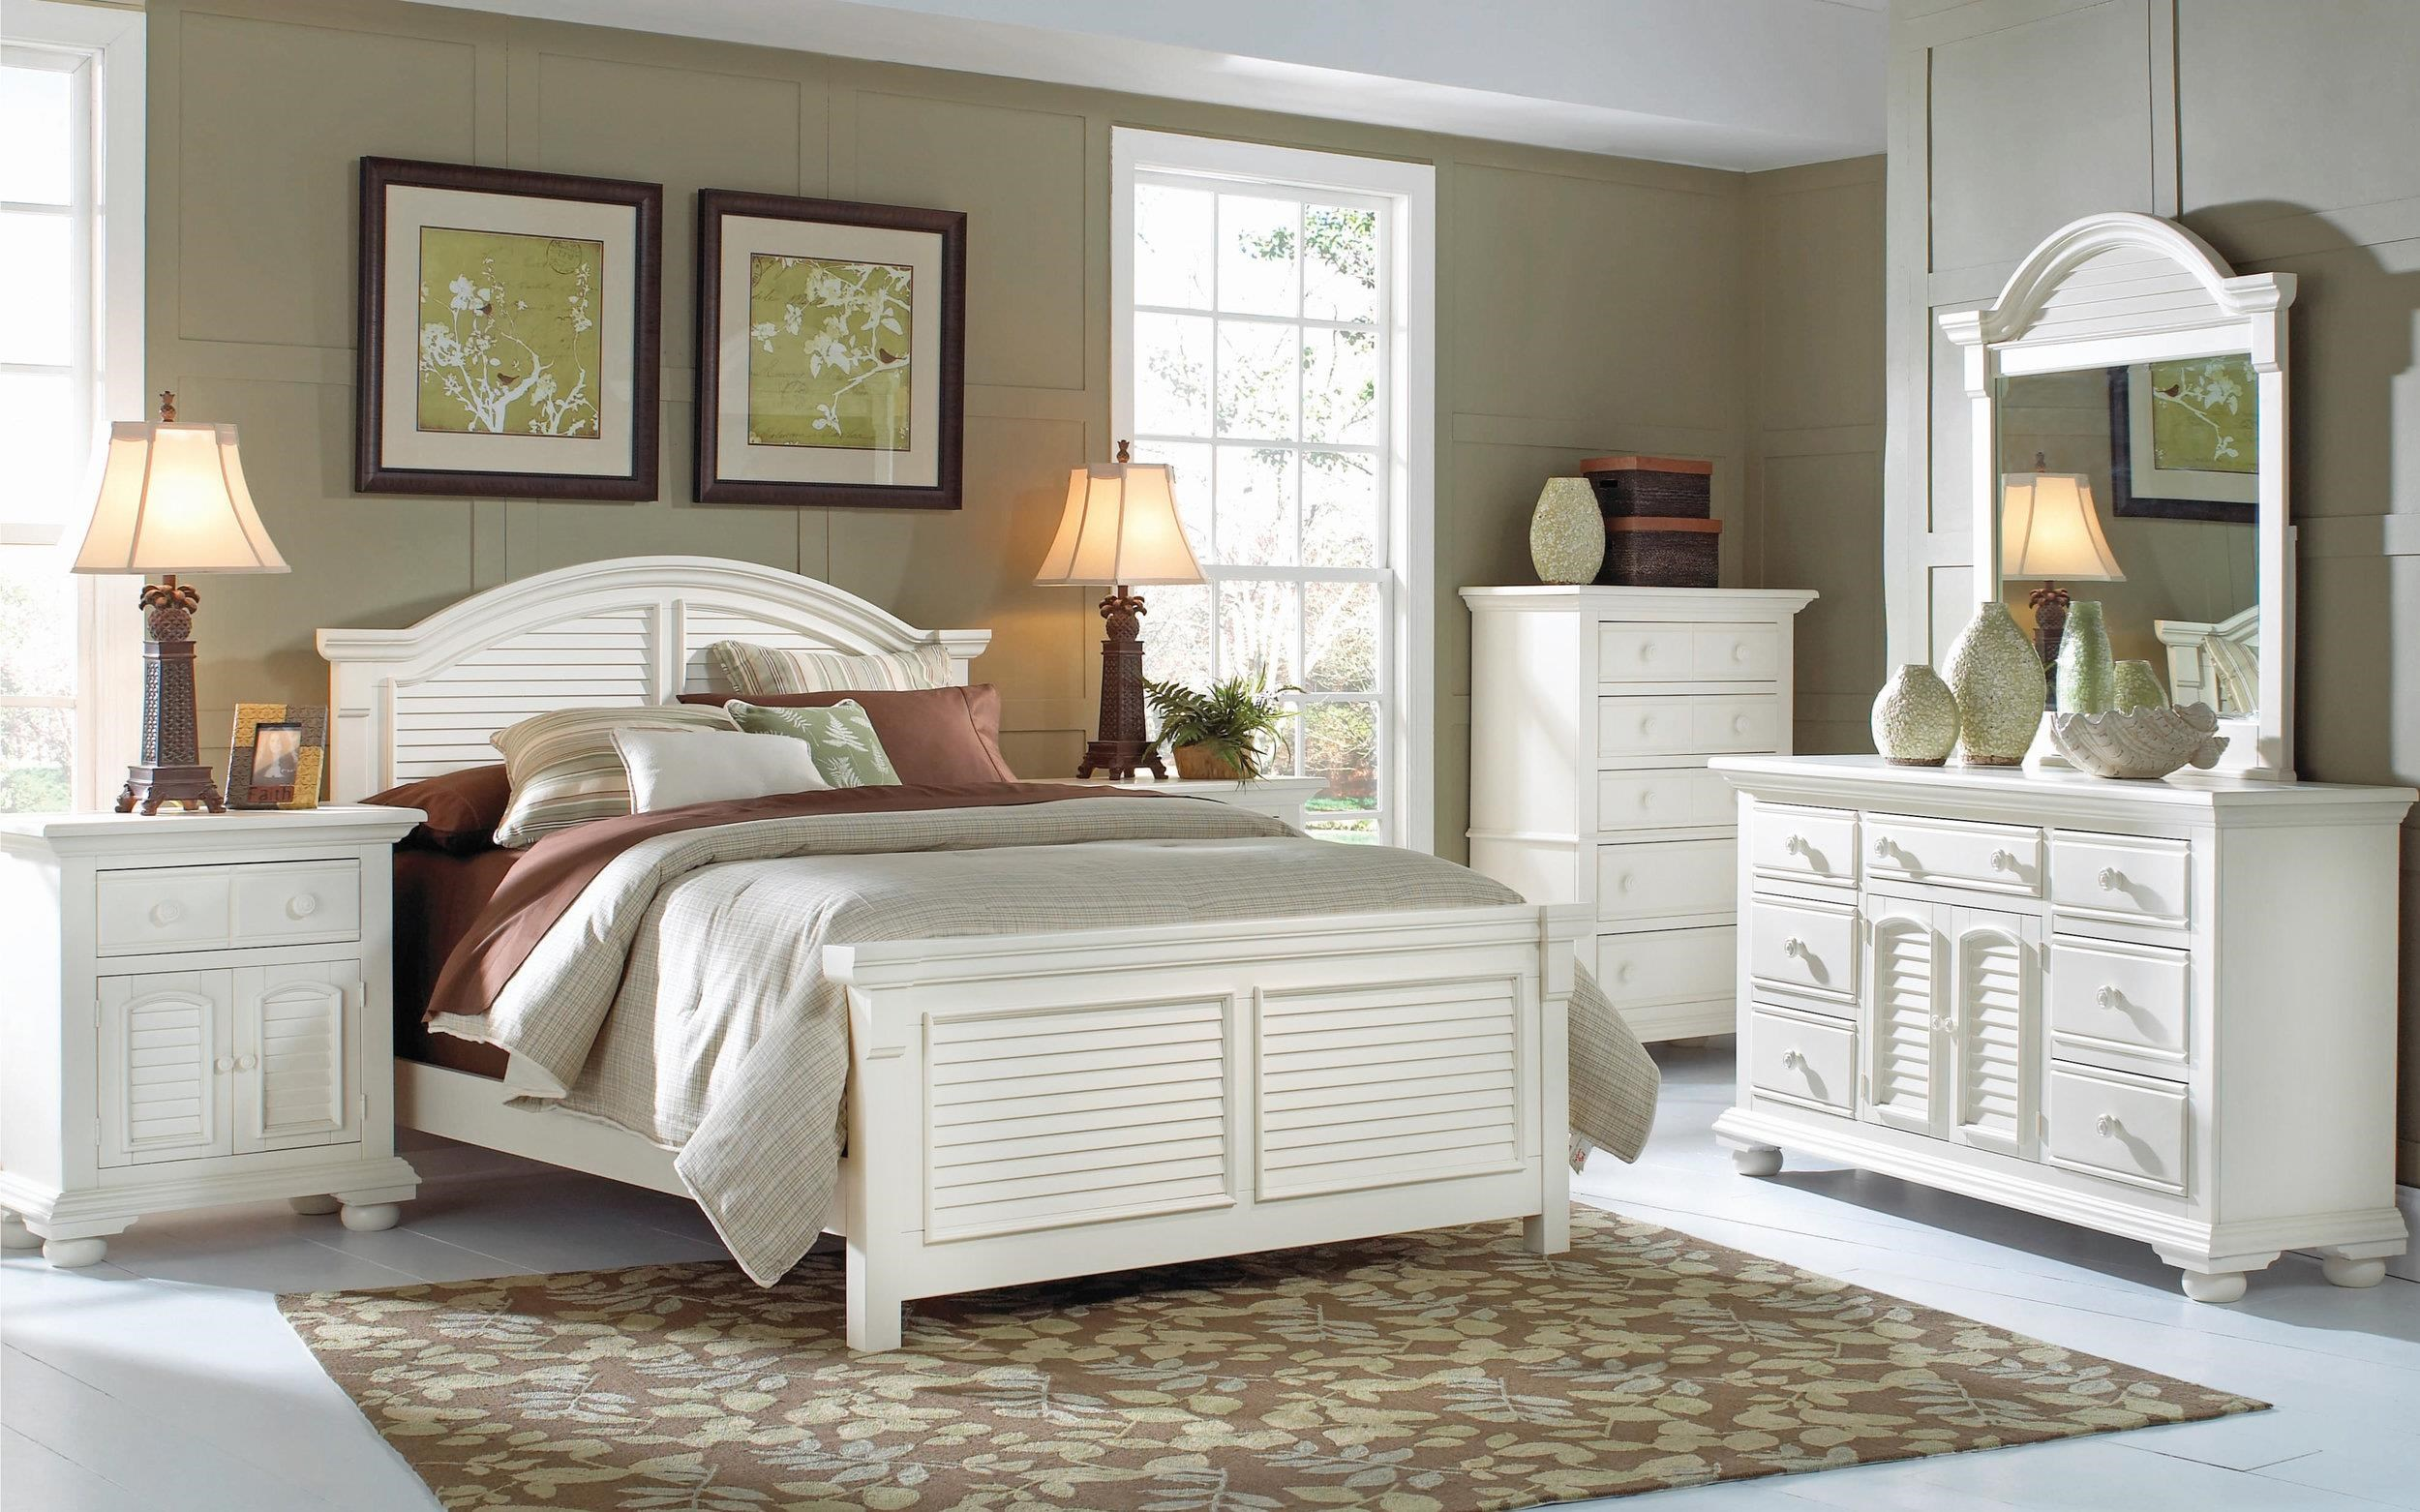 Cottage Traditions Queen Panel Bed, Nightstand, Dresser, Mirror by American Woodcrafters at Johnny Janosik